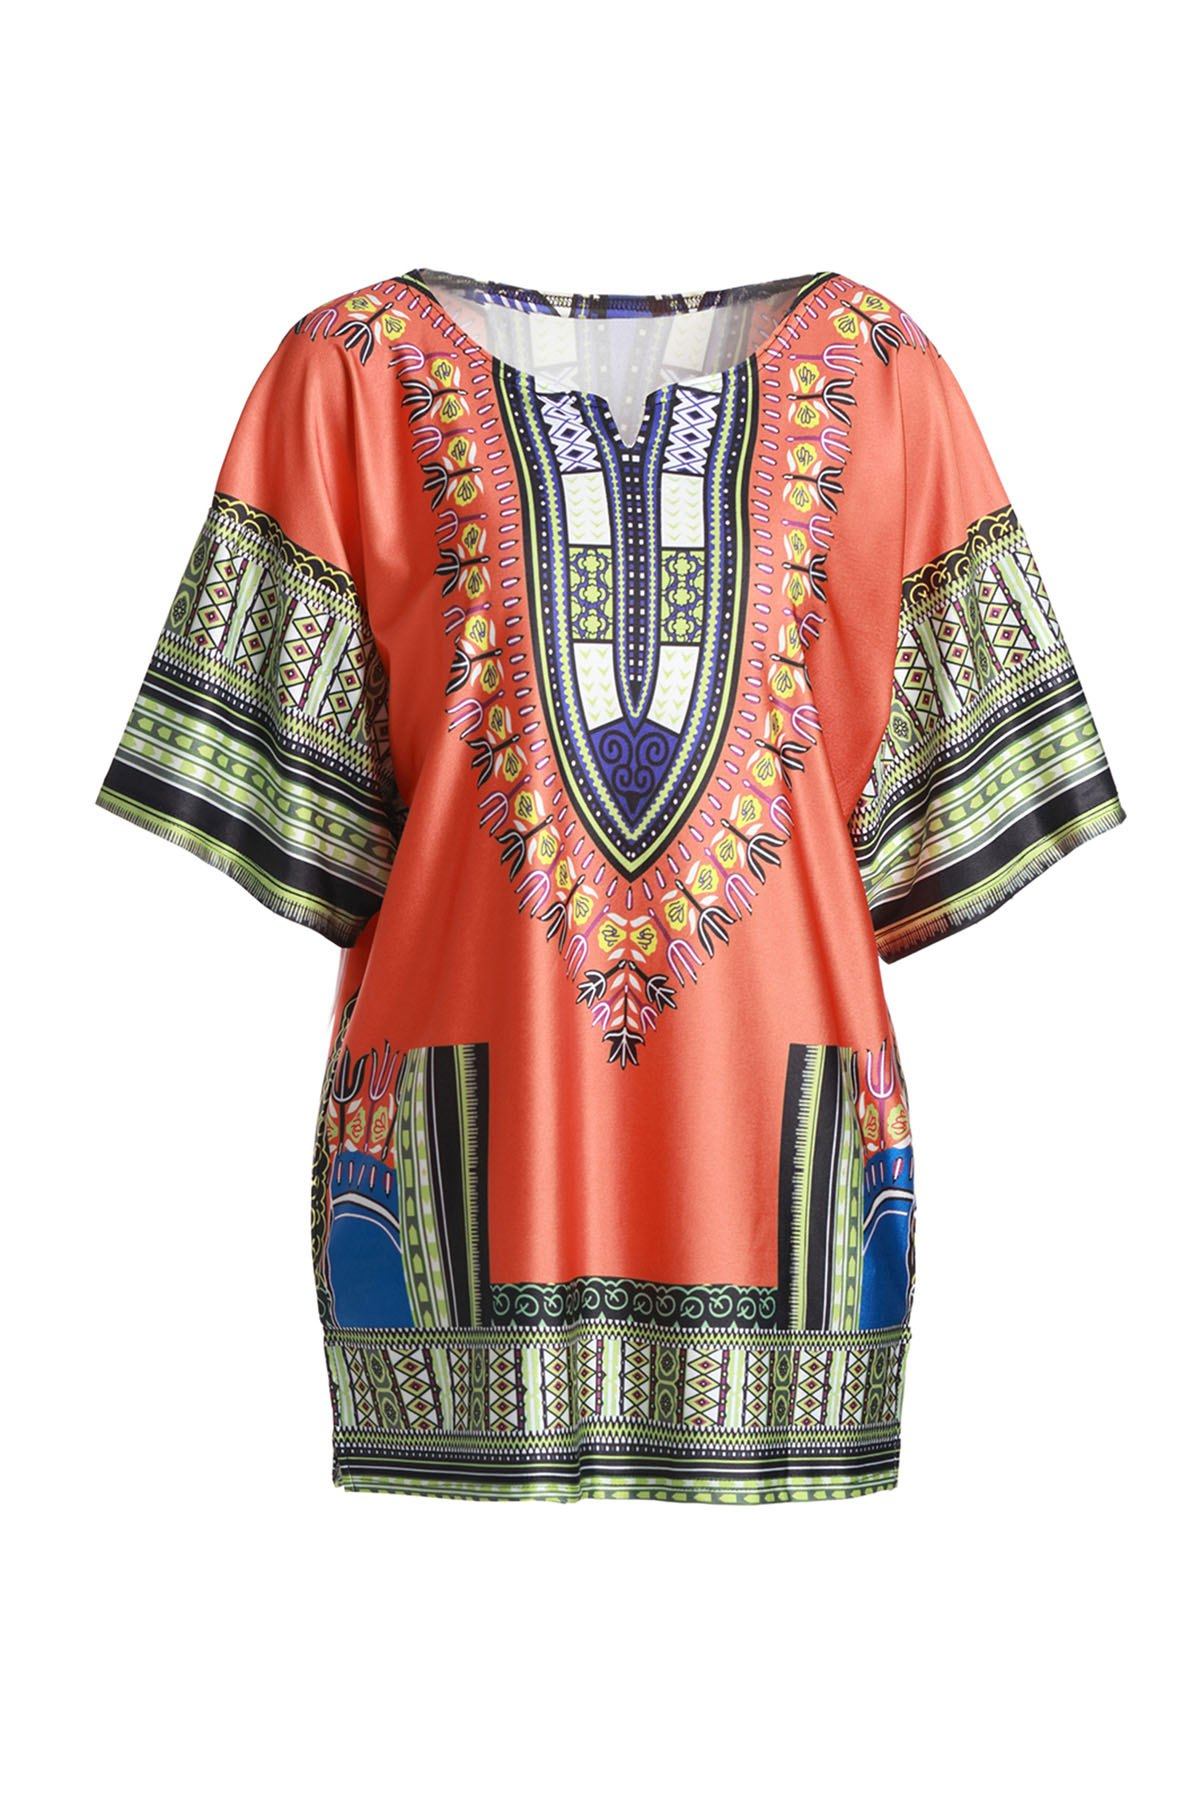 Ethnic Style 1/2 Sleeve Colorful Printed Loose Dress For Women - ORANGE L